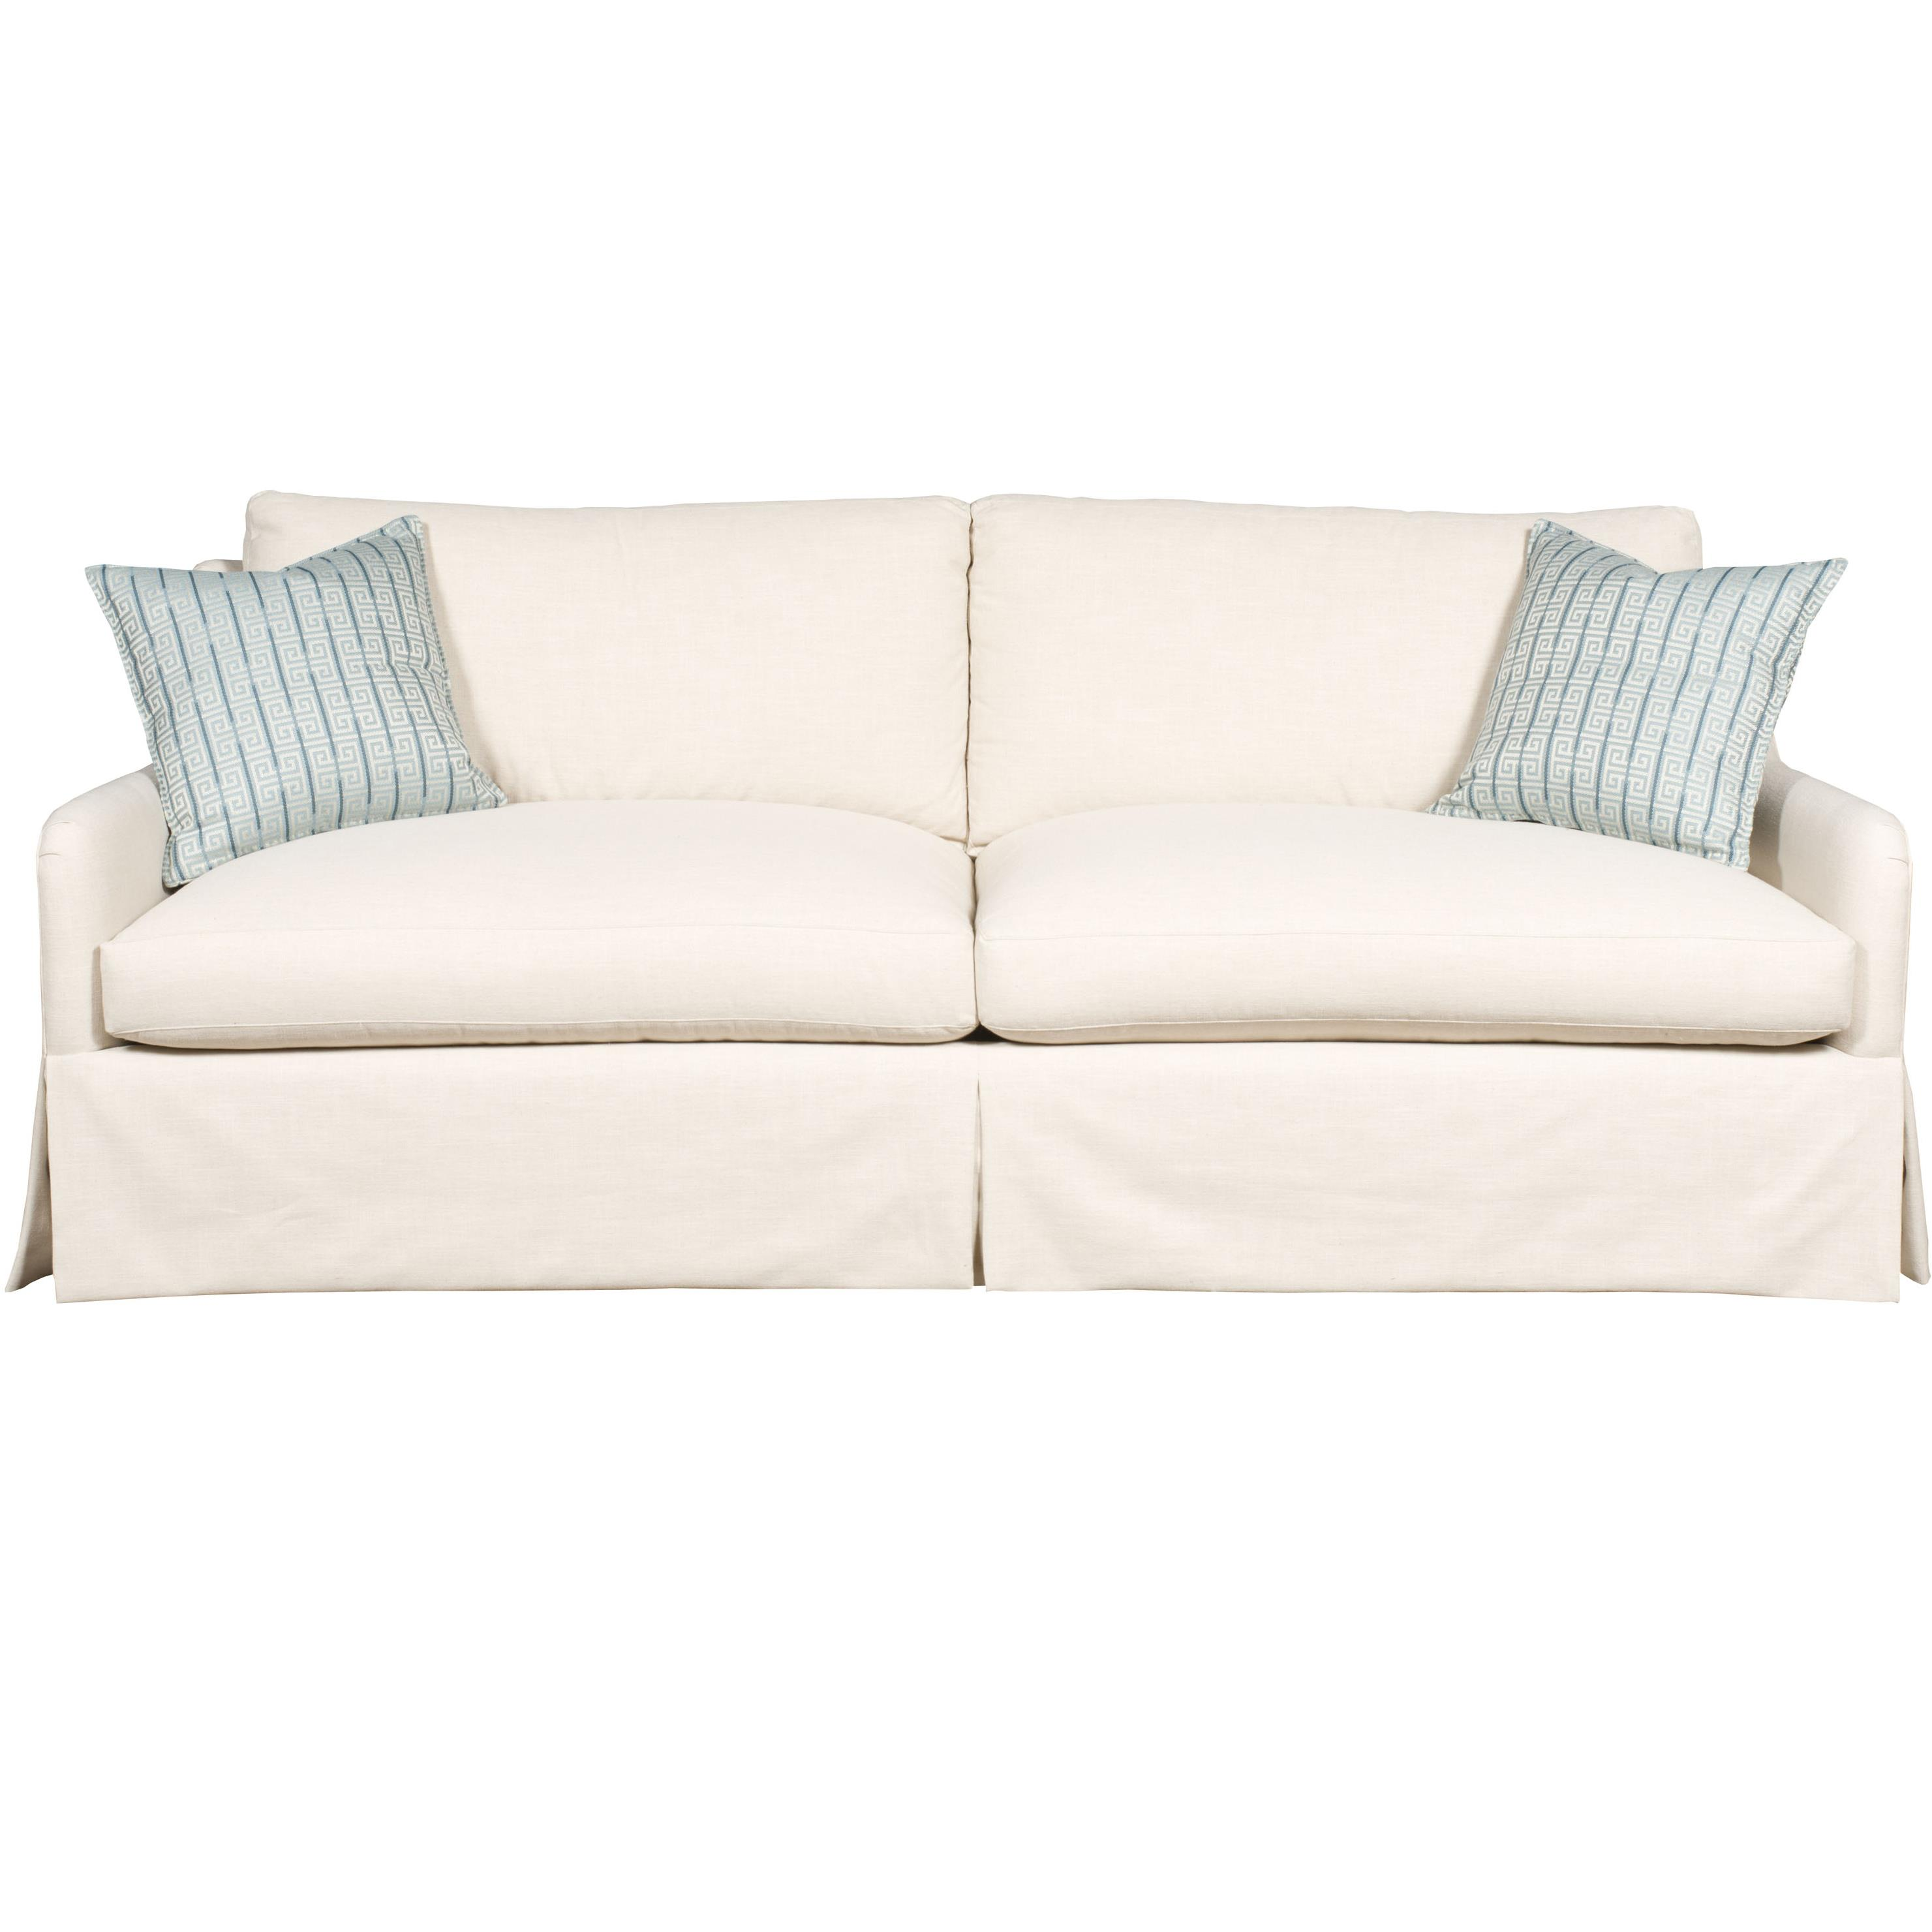 Vanguard Furniture Fisher Contemporary Sofa With Track Arms And